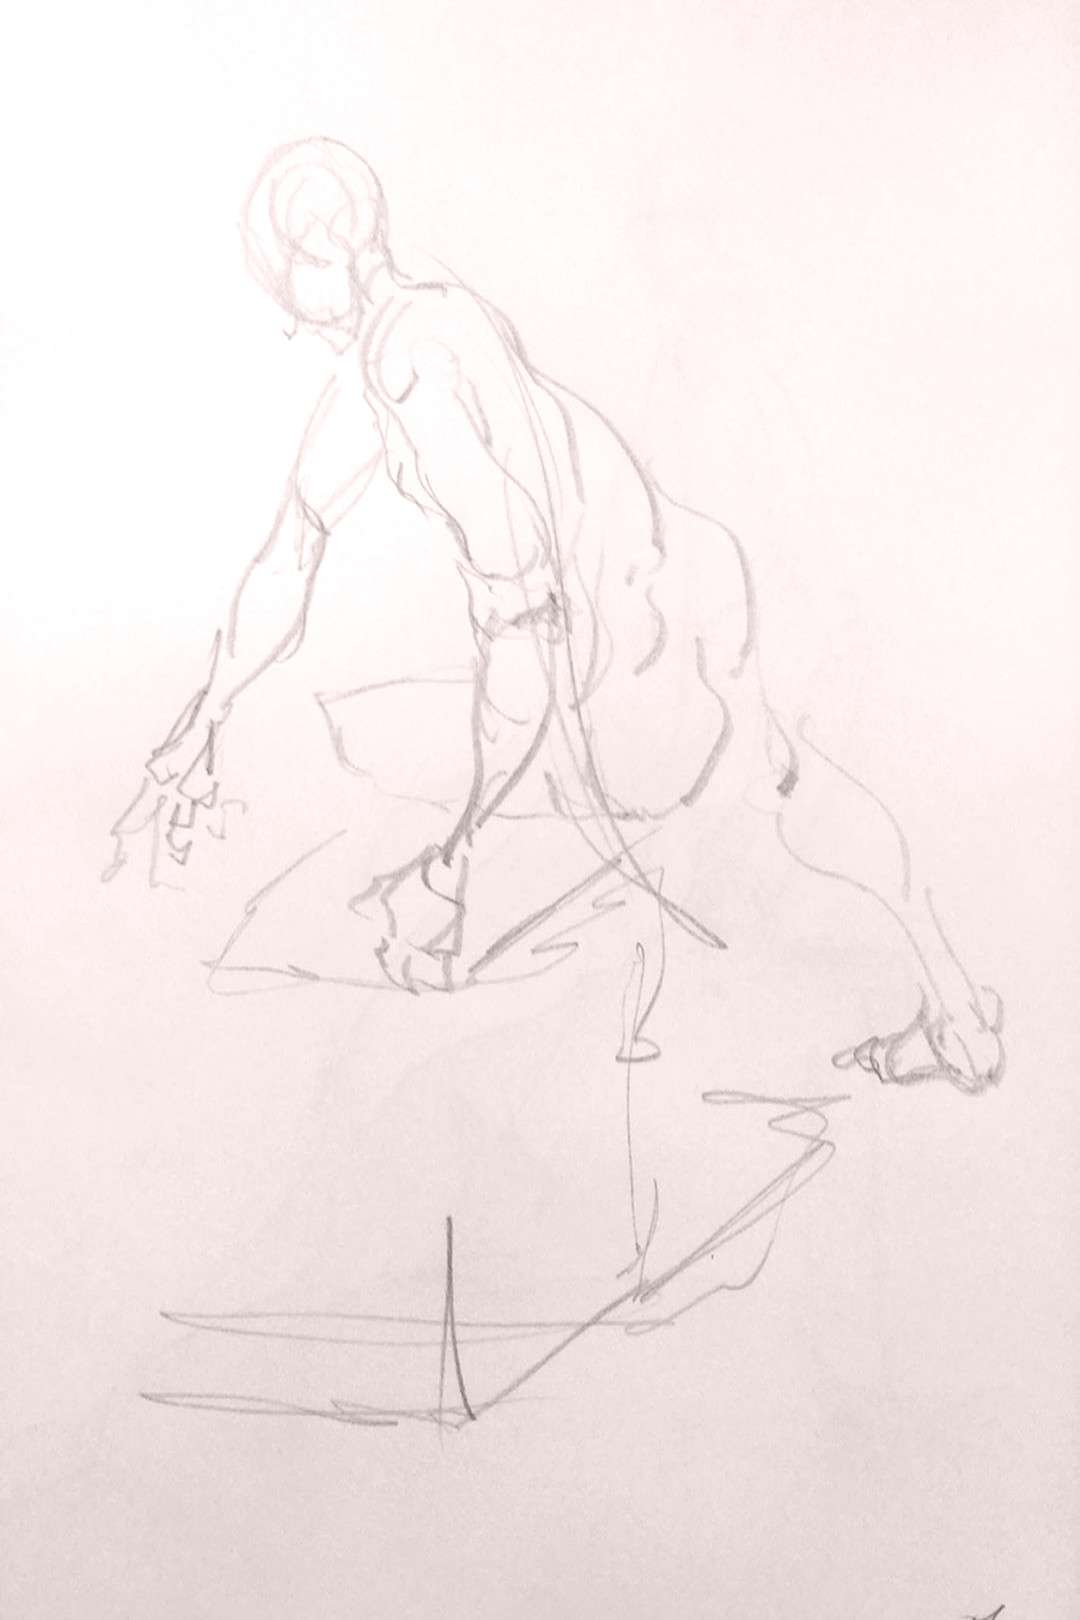 Some 2m gestures from Friday. #lifedraw #drawnfromlife #croquis #